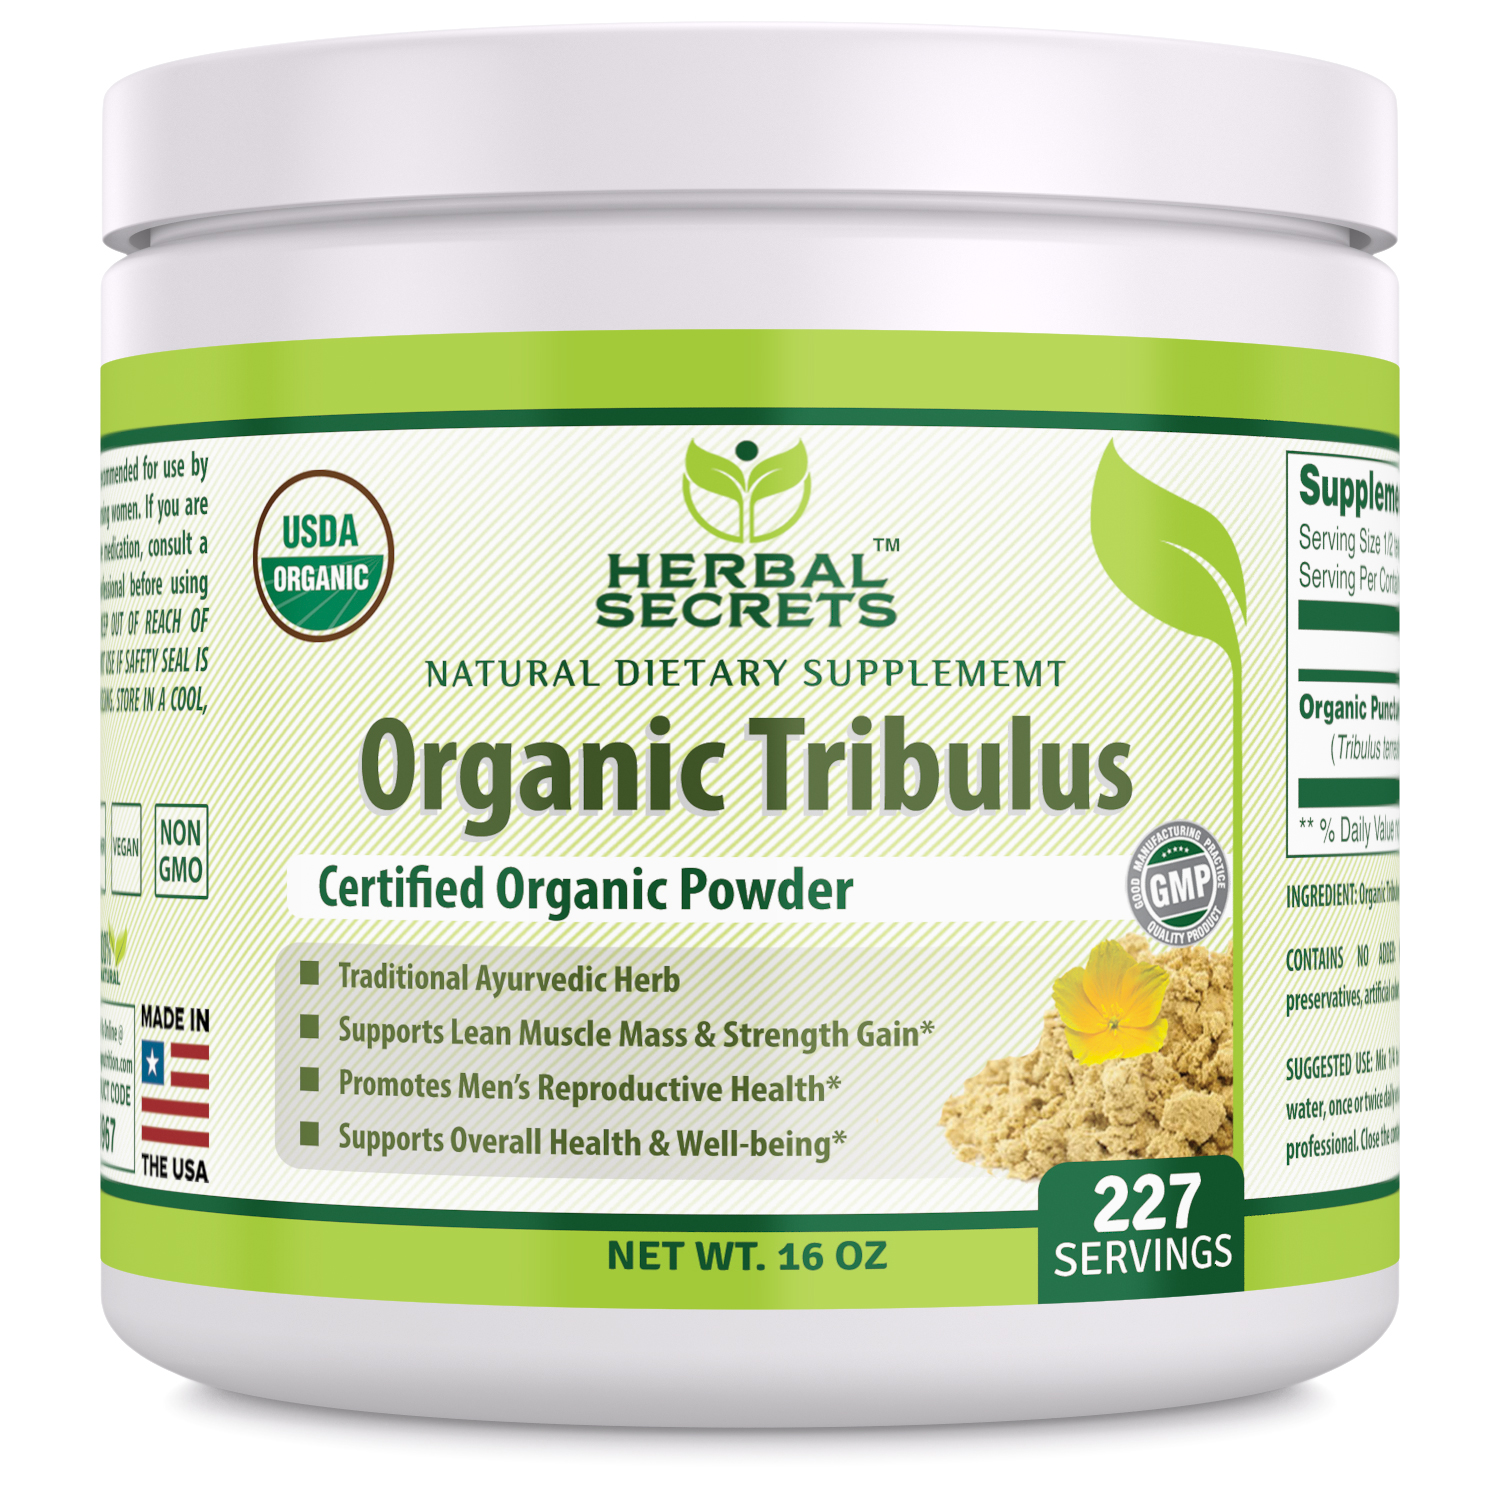 Herbal Secrets Organic Tribulus Powder - 16 Oz Capsules